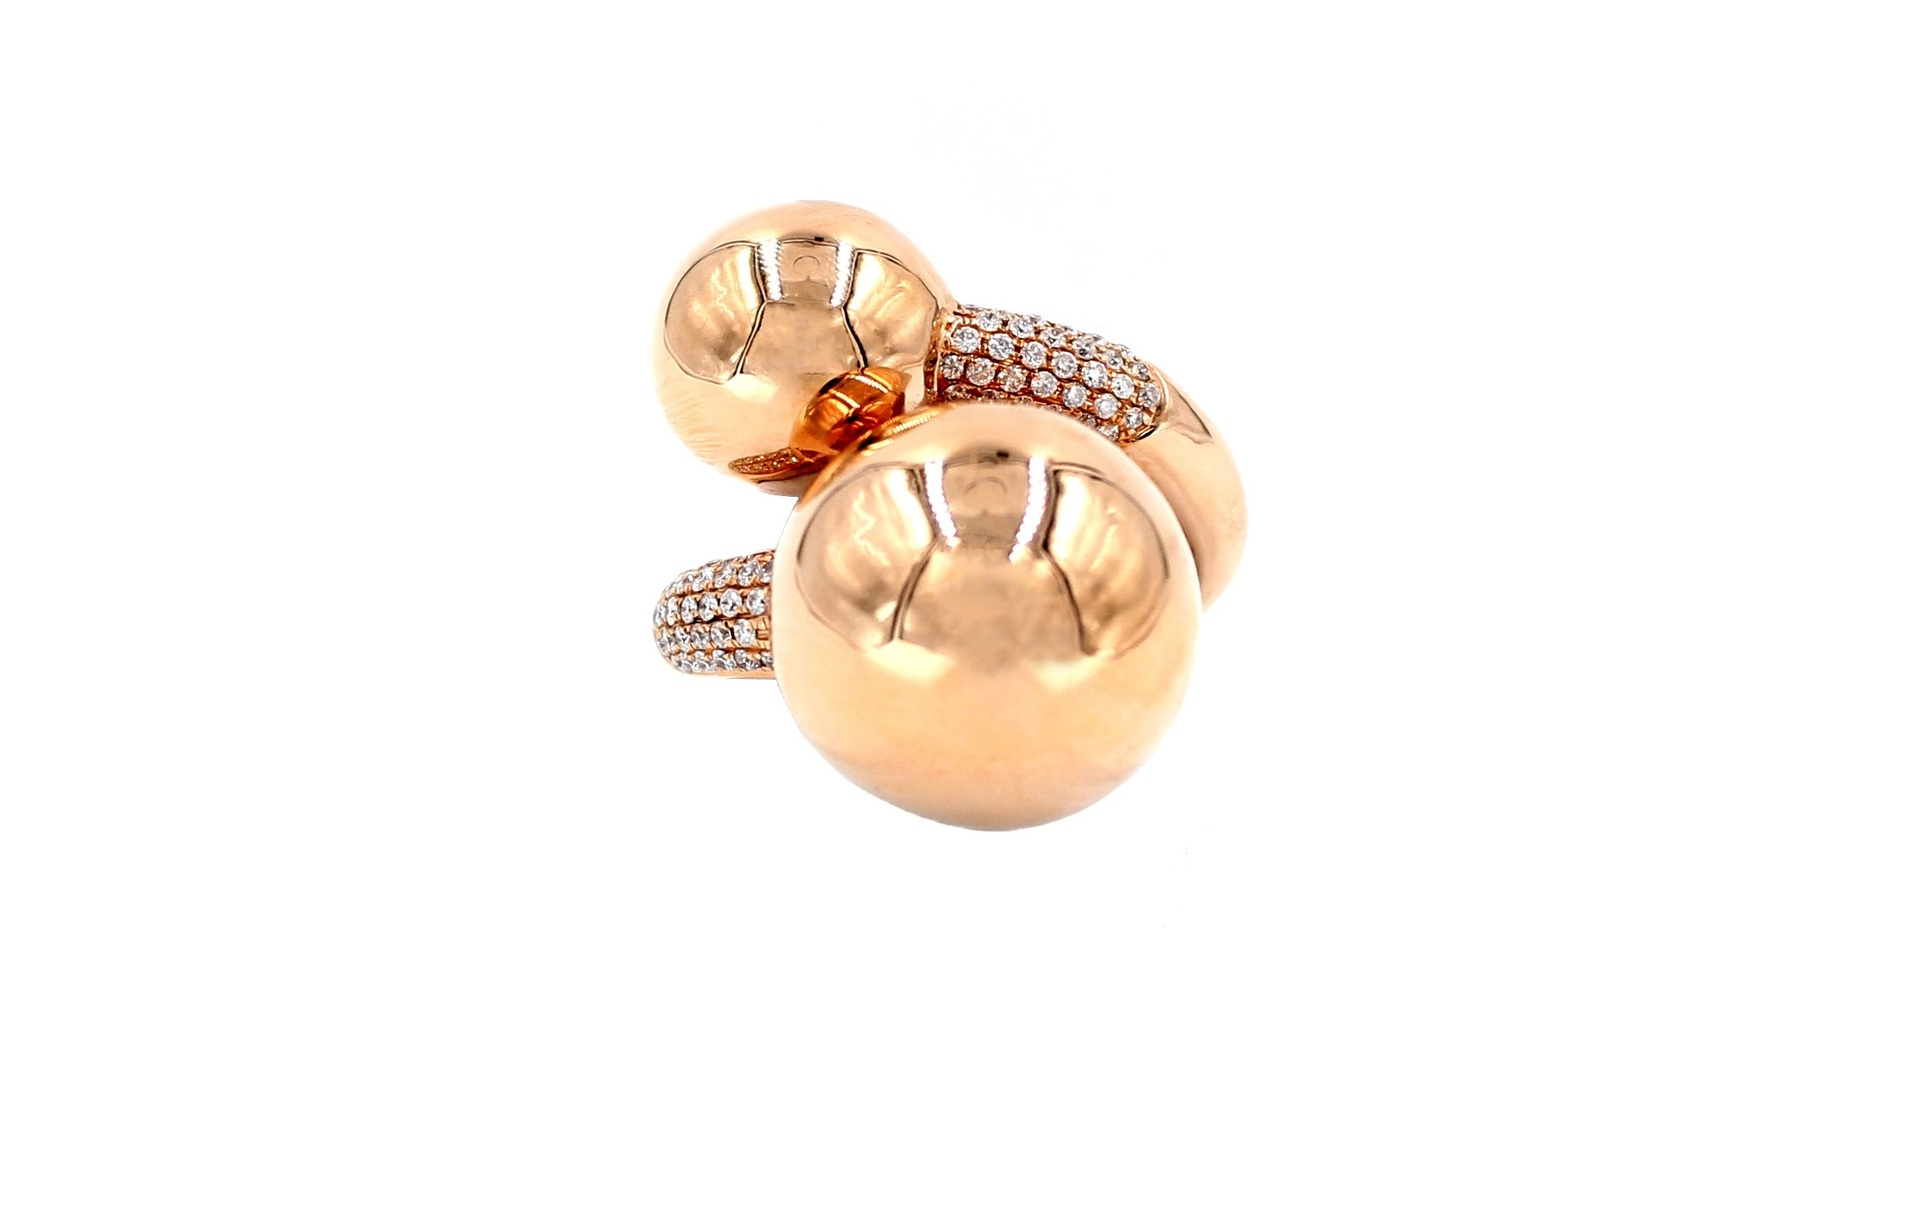 Intertwining Golden Globes Spheres Diamonds Ring